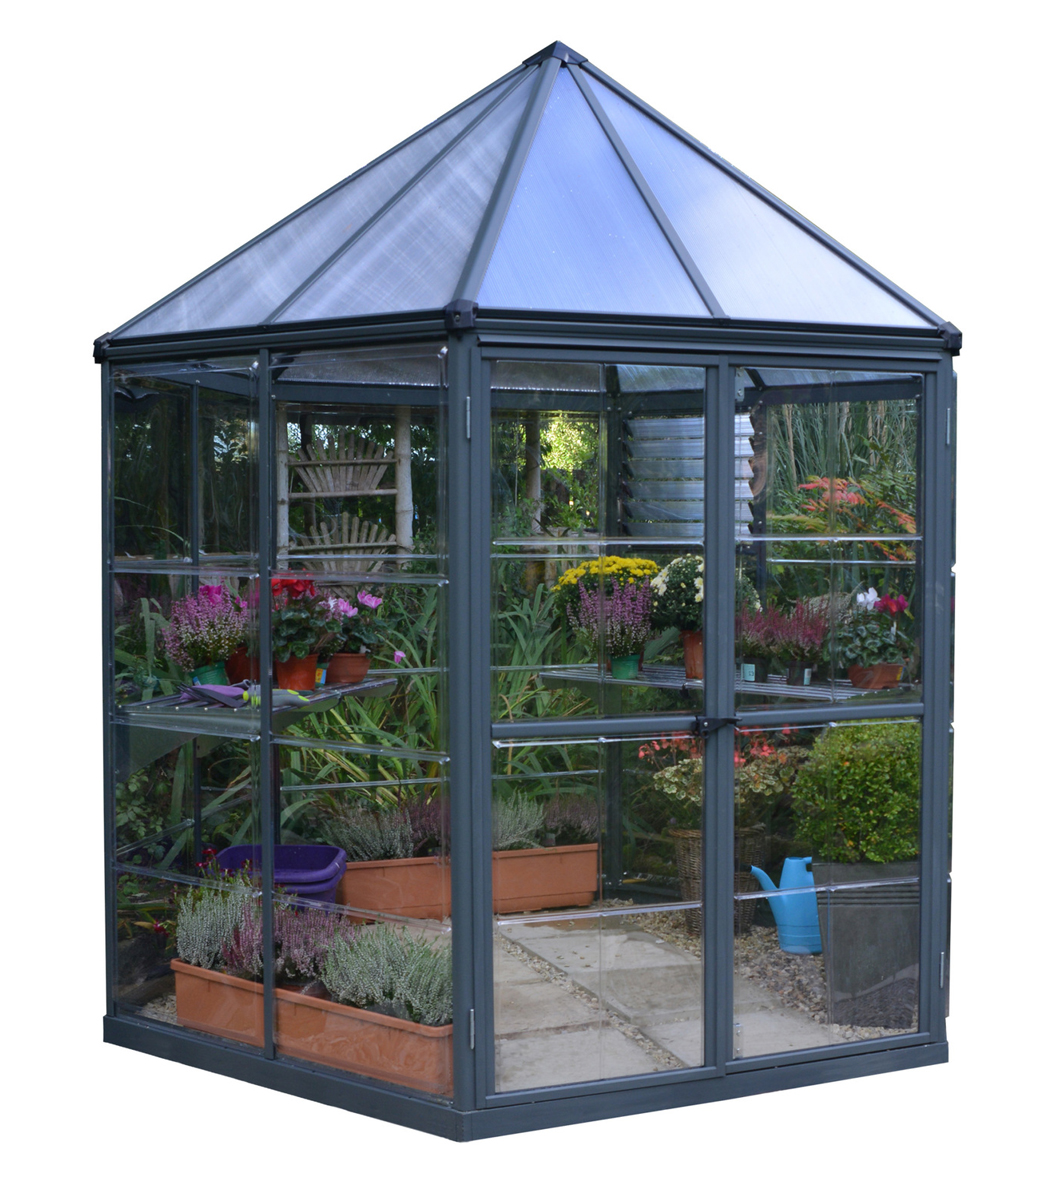 Oasis Hex 7' x 8' Greenhouse